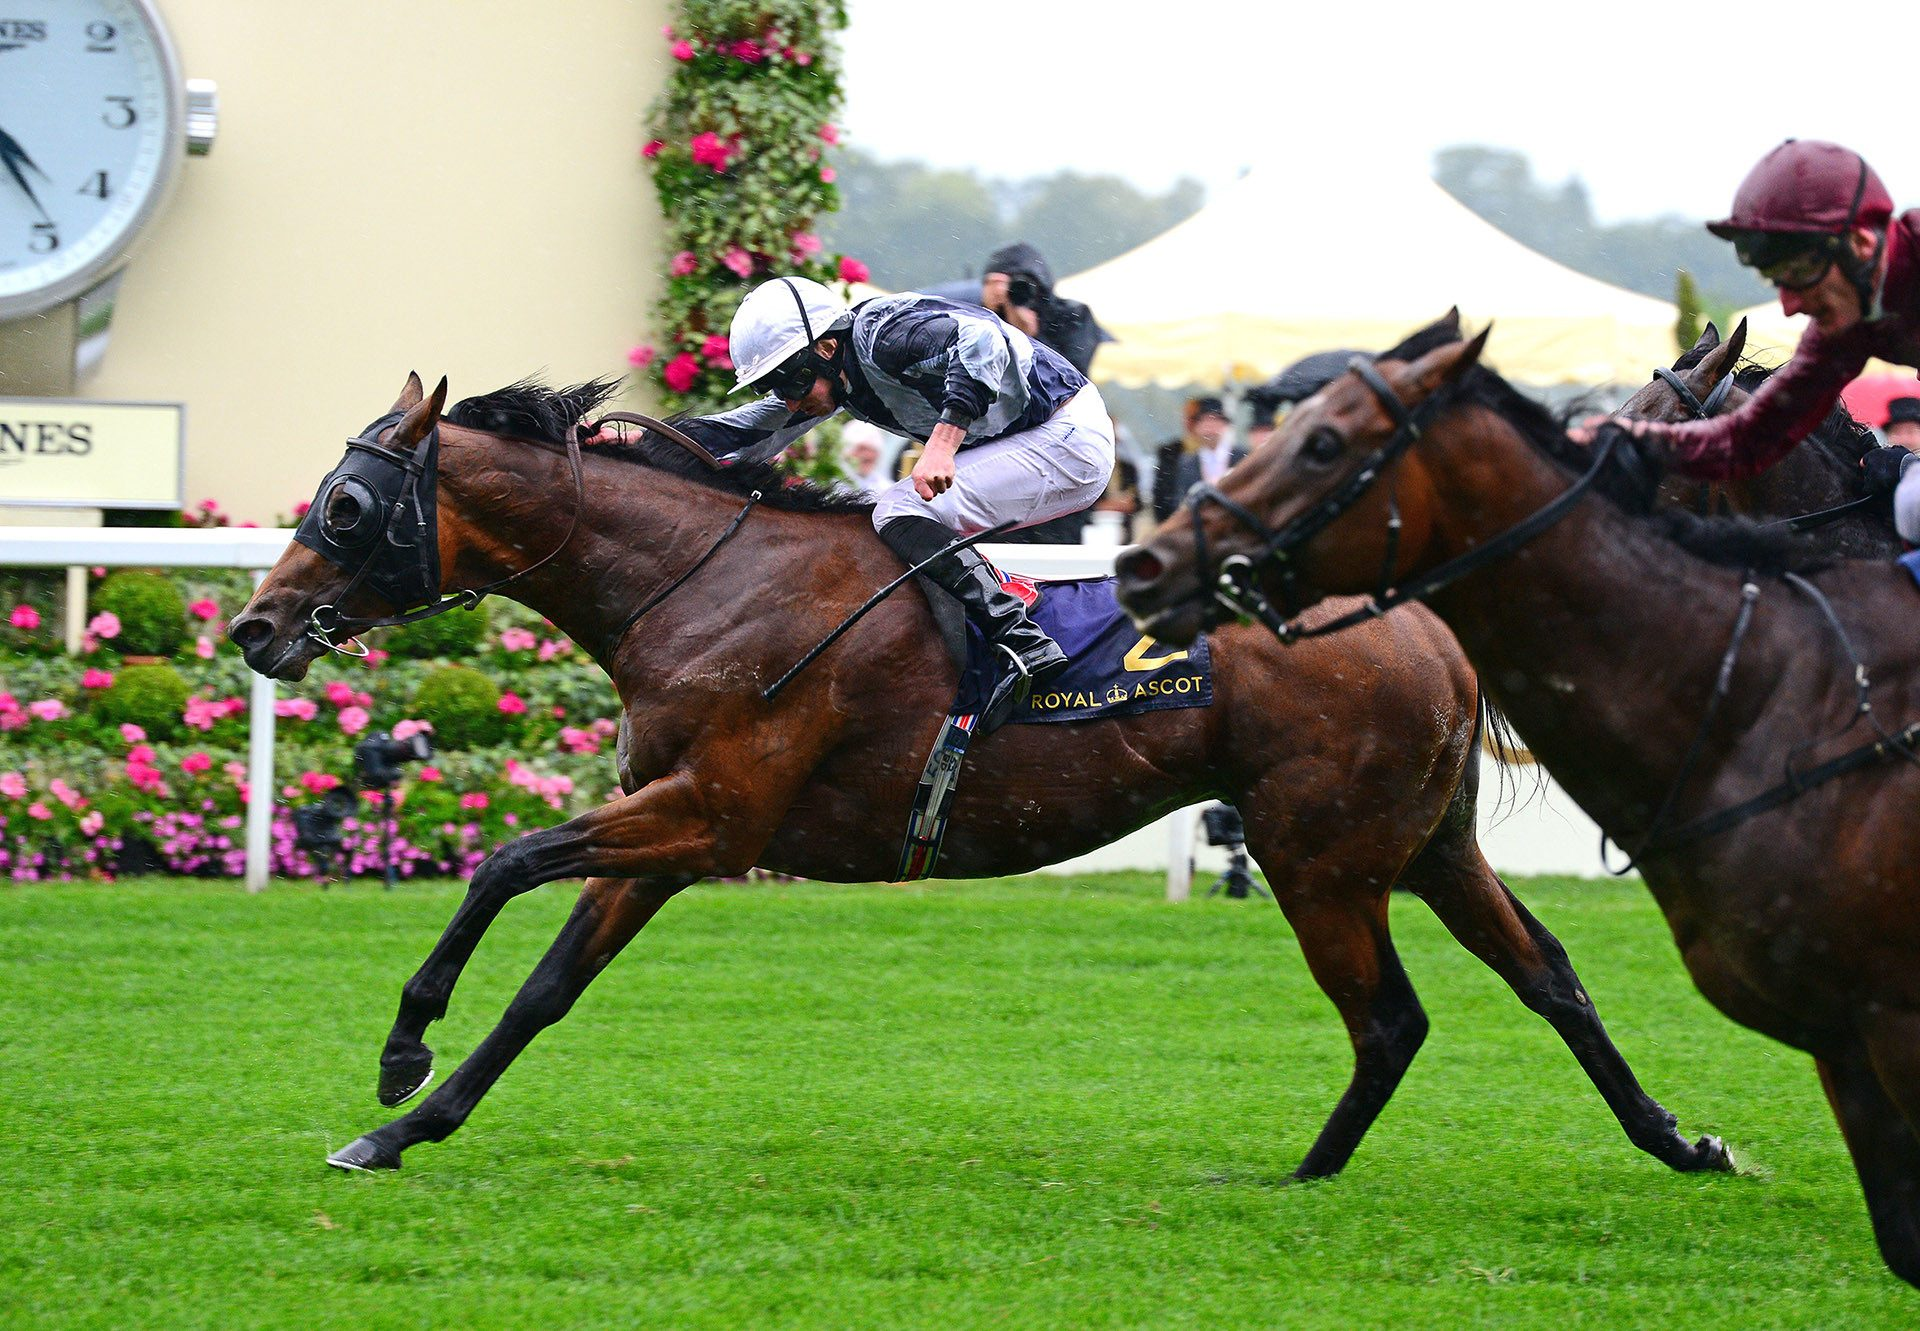 Circus Maximus (Galileo) winning the Gr.1 St James's Palace Stakes at Royal Ascot